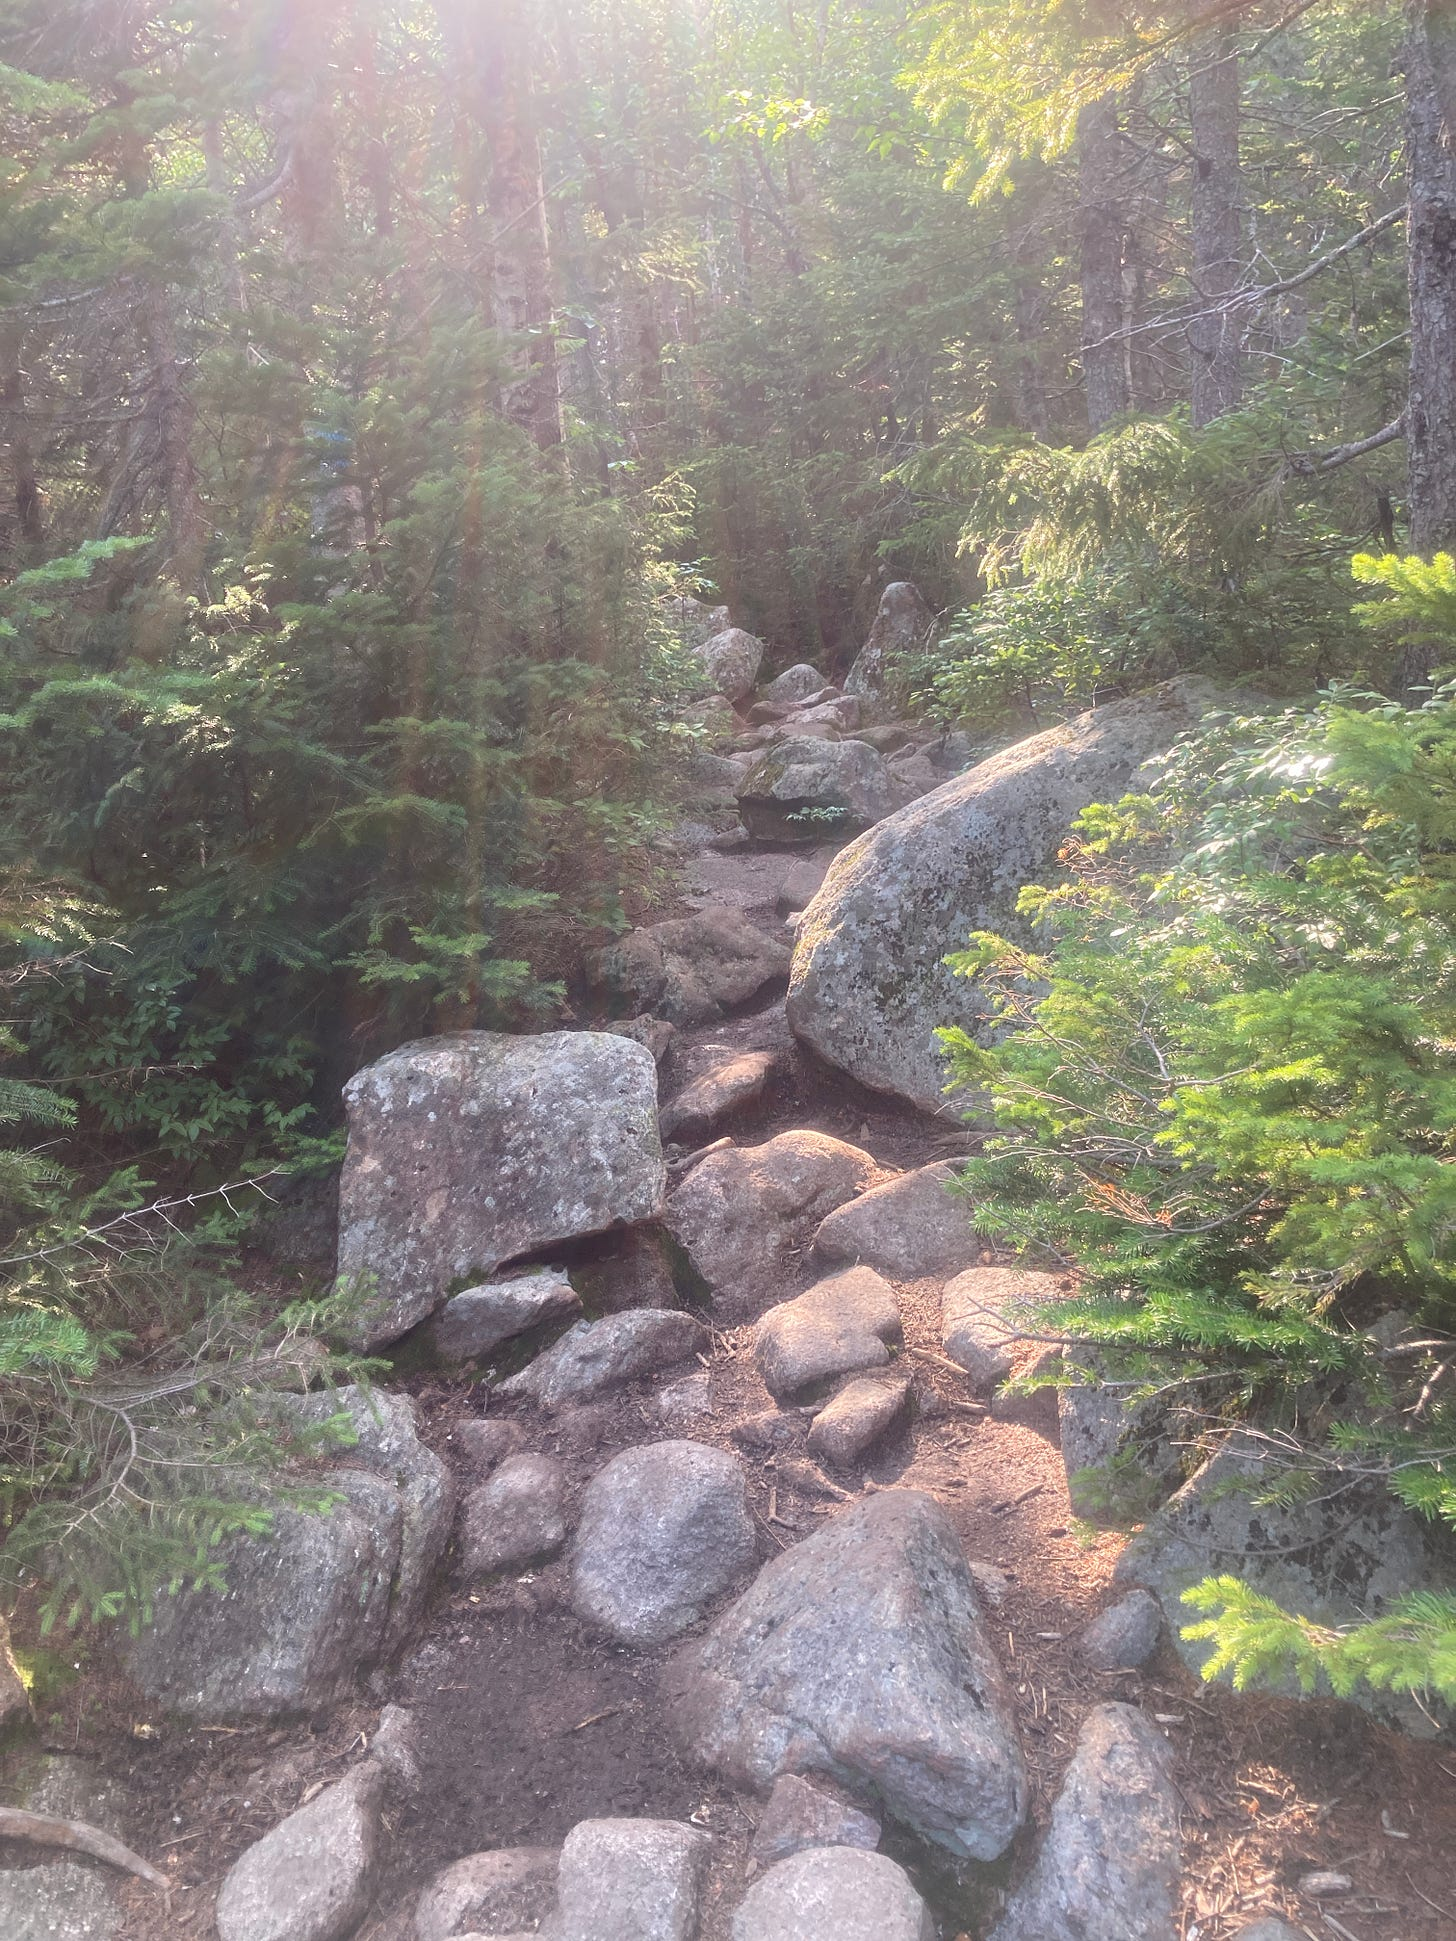 A rocky trail leaqds off into the deep woods, with sunbeams shining down. A blissfully tab-free environment.